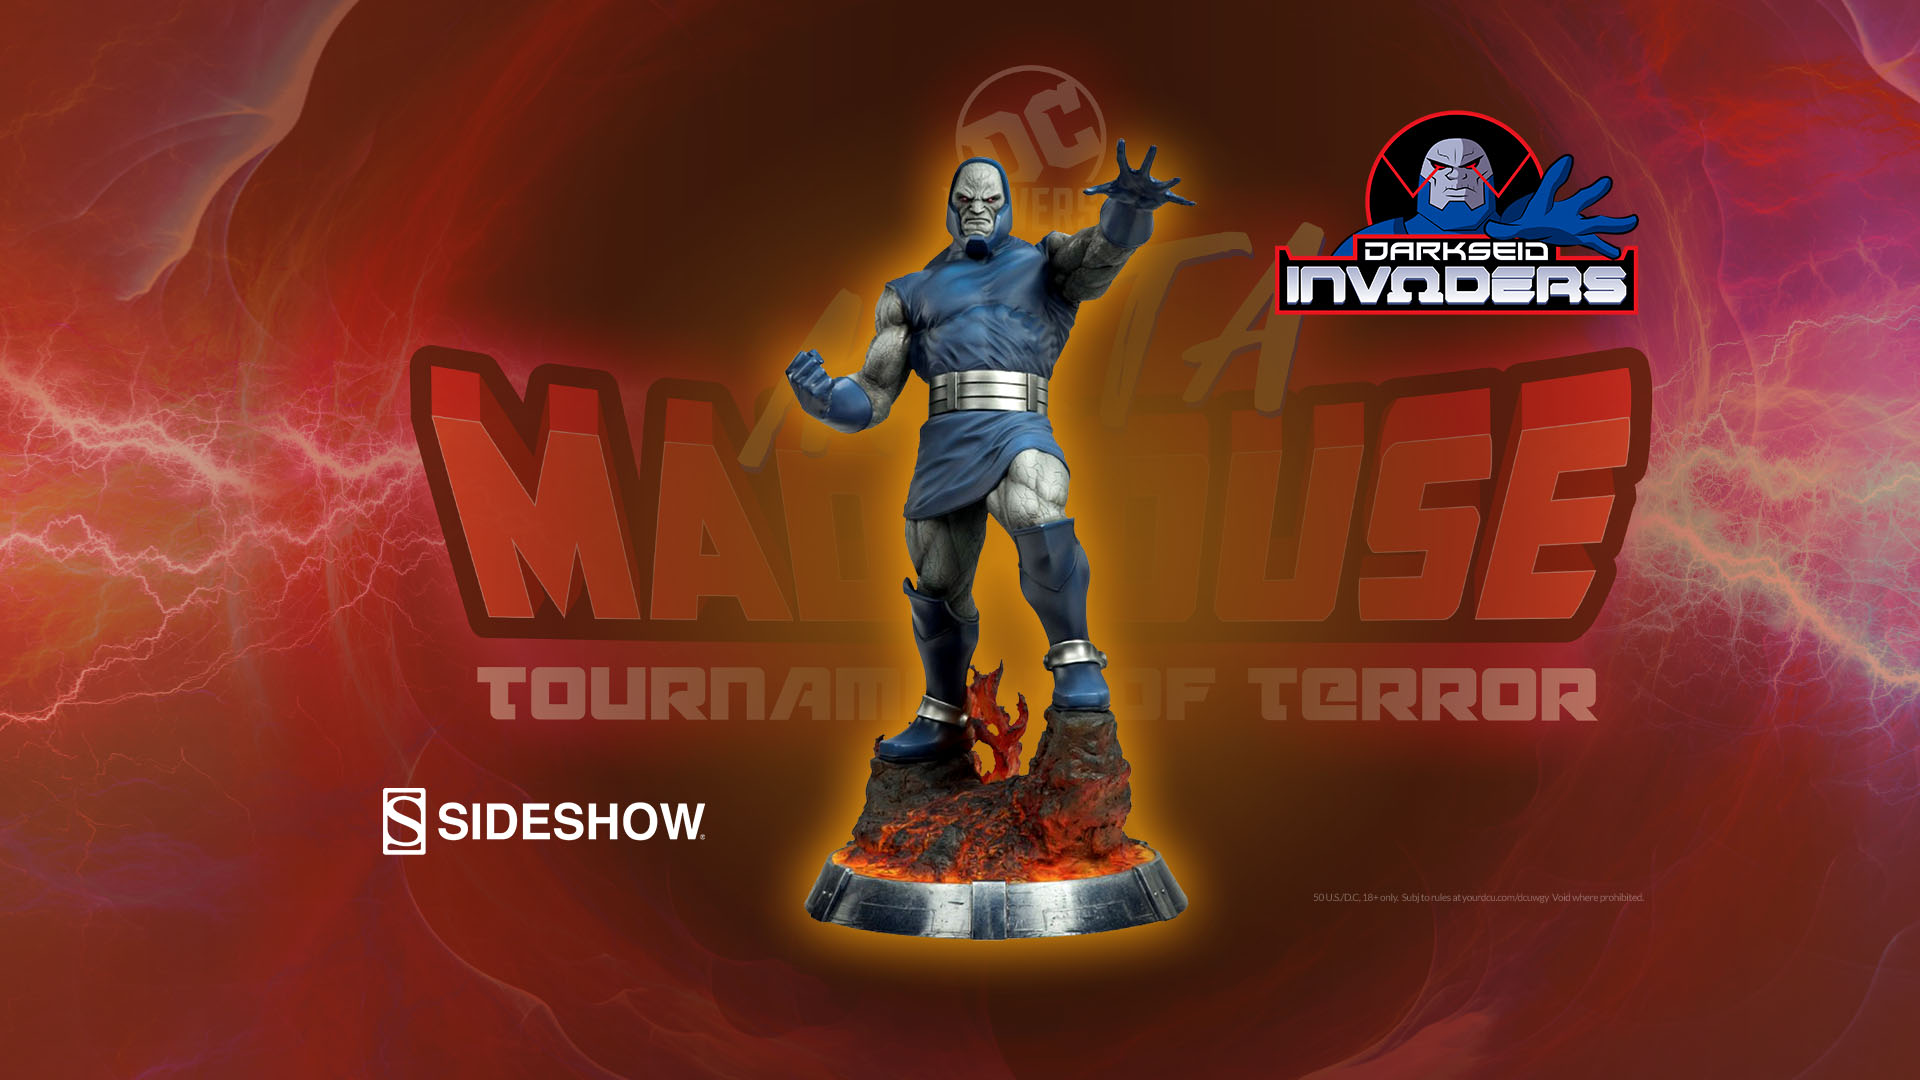 Meta_Madness_The_Invader_Darkseid_sweepstakes_fnl_hero-c2.jpg